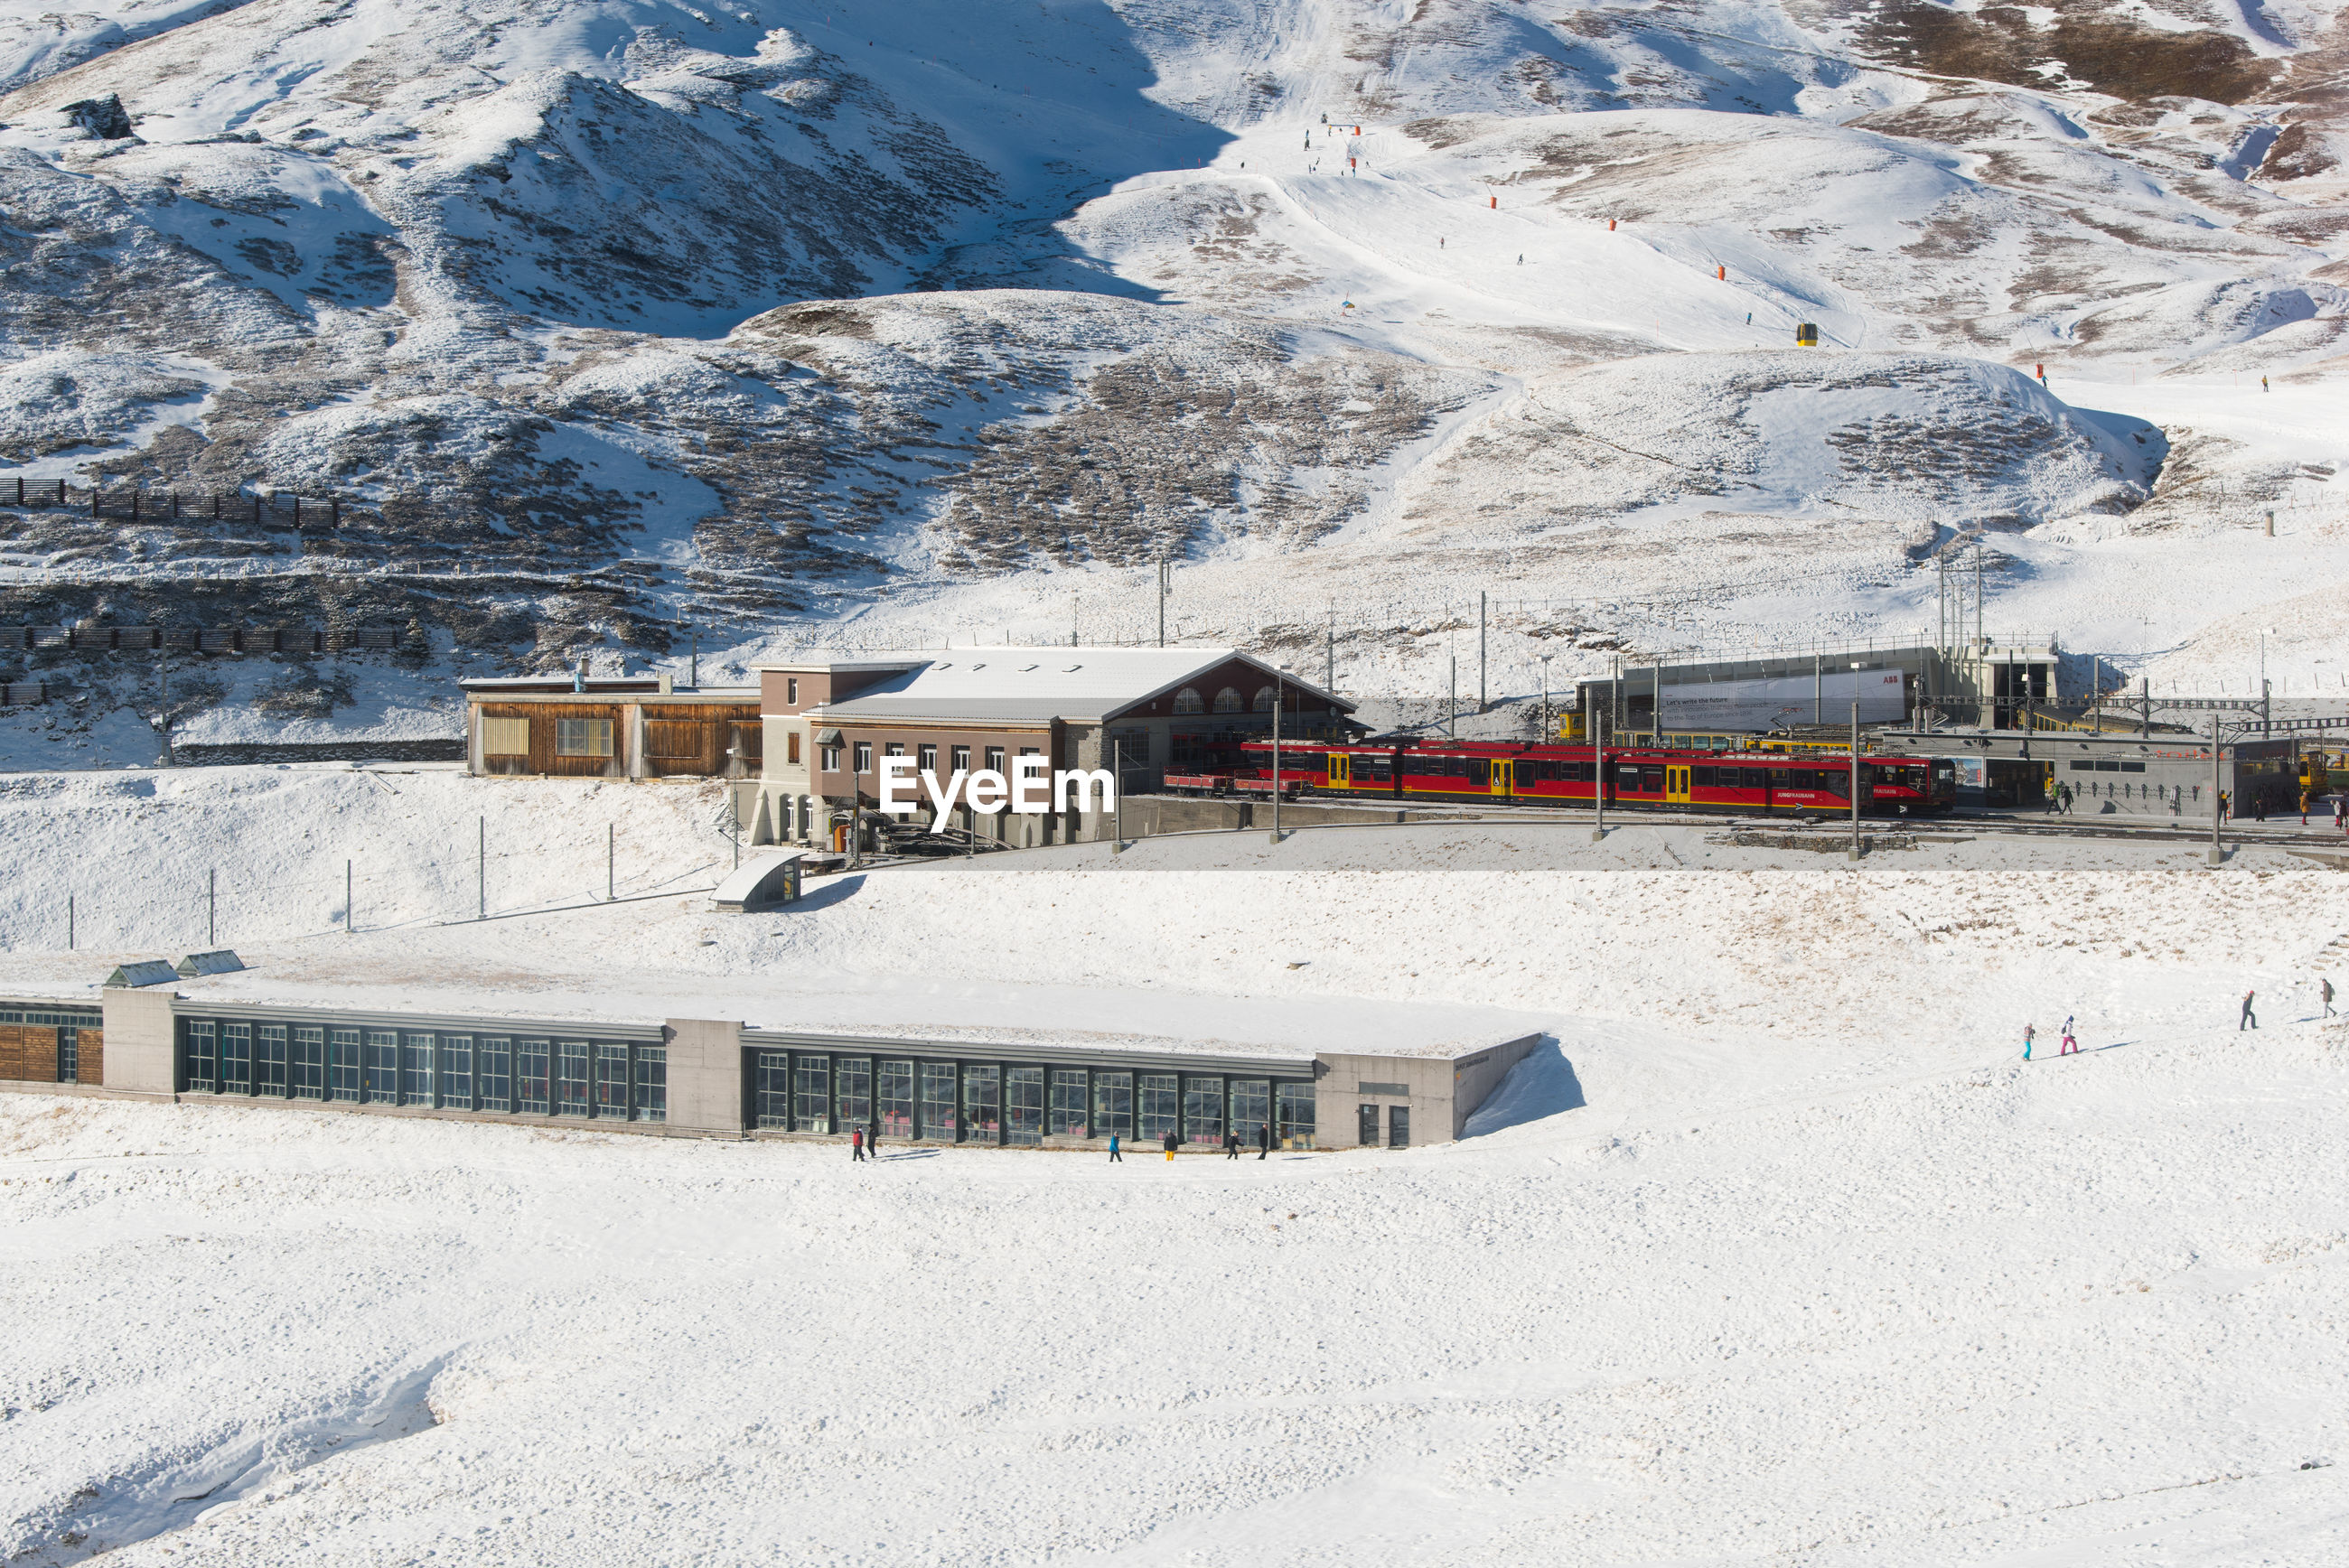 Railroad station by snowcapped mountain